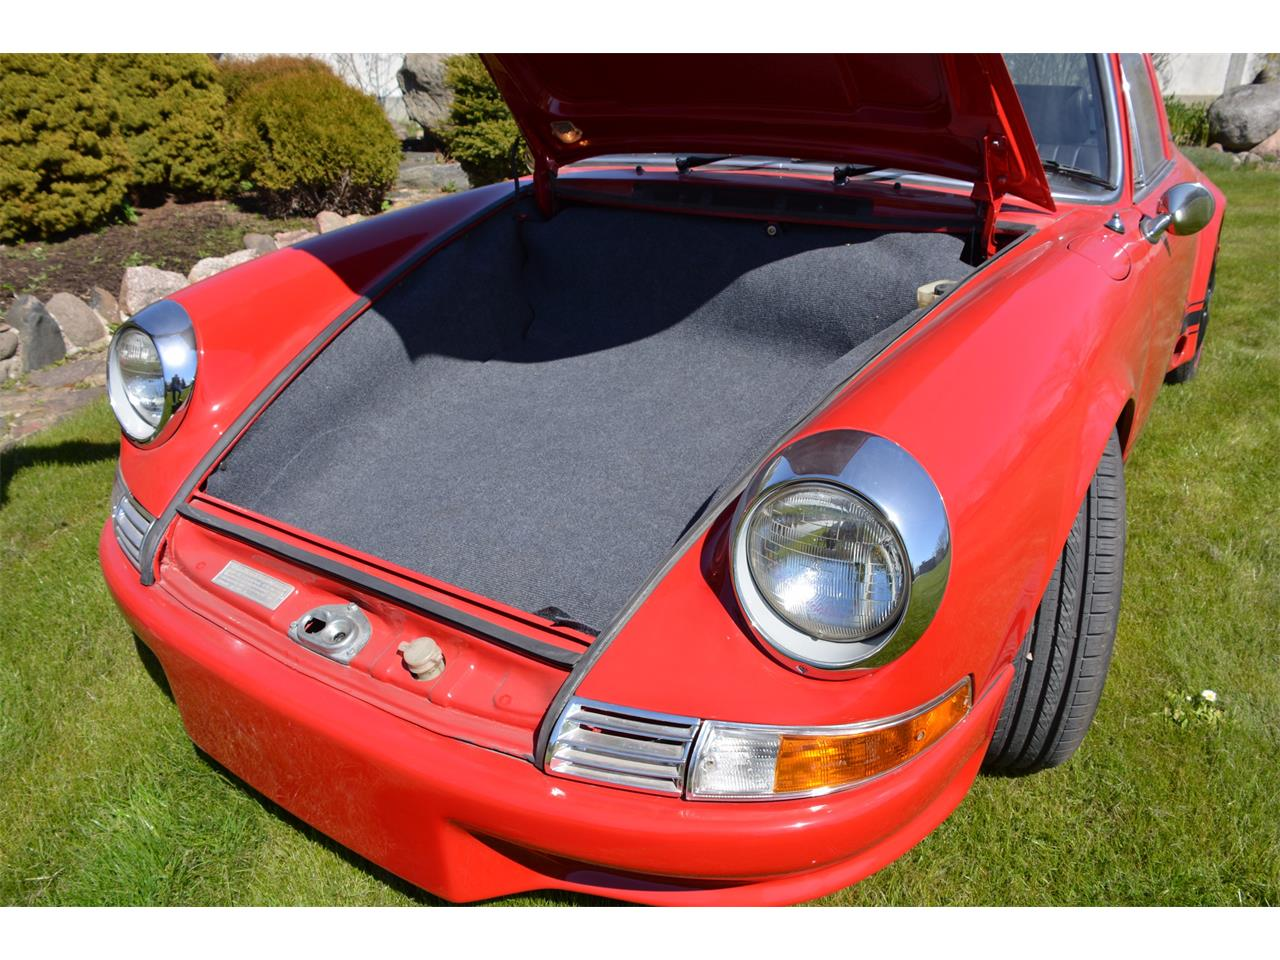 Large Picture of '72 Porsche 911T located in Lithuania Offered by a Private Seller - KNJC